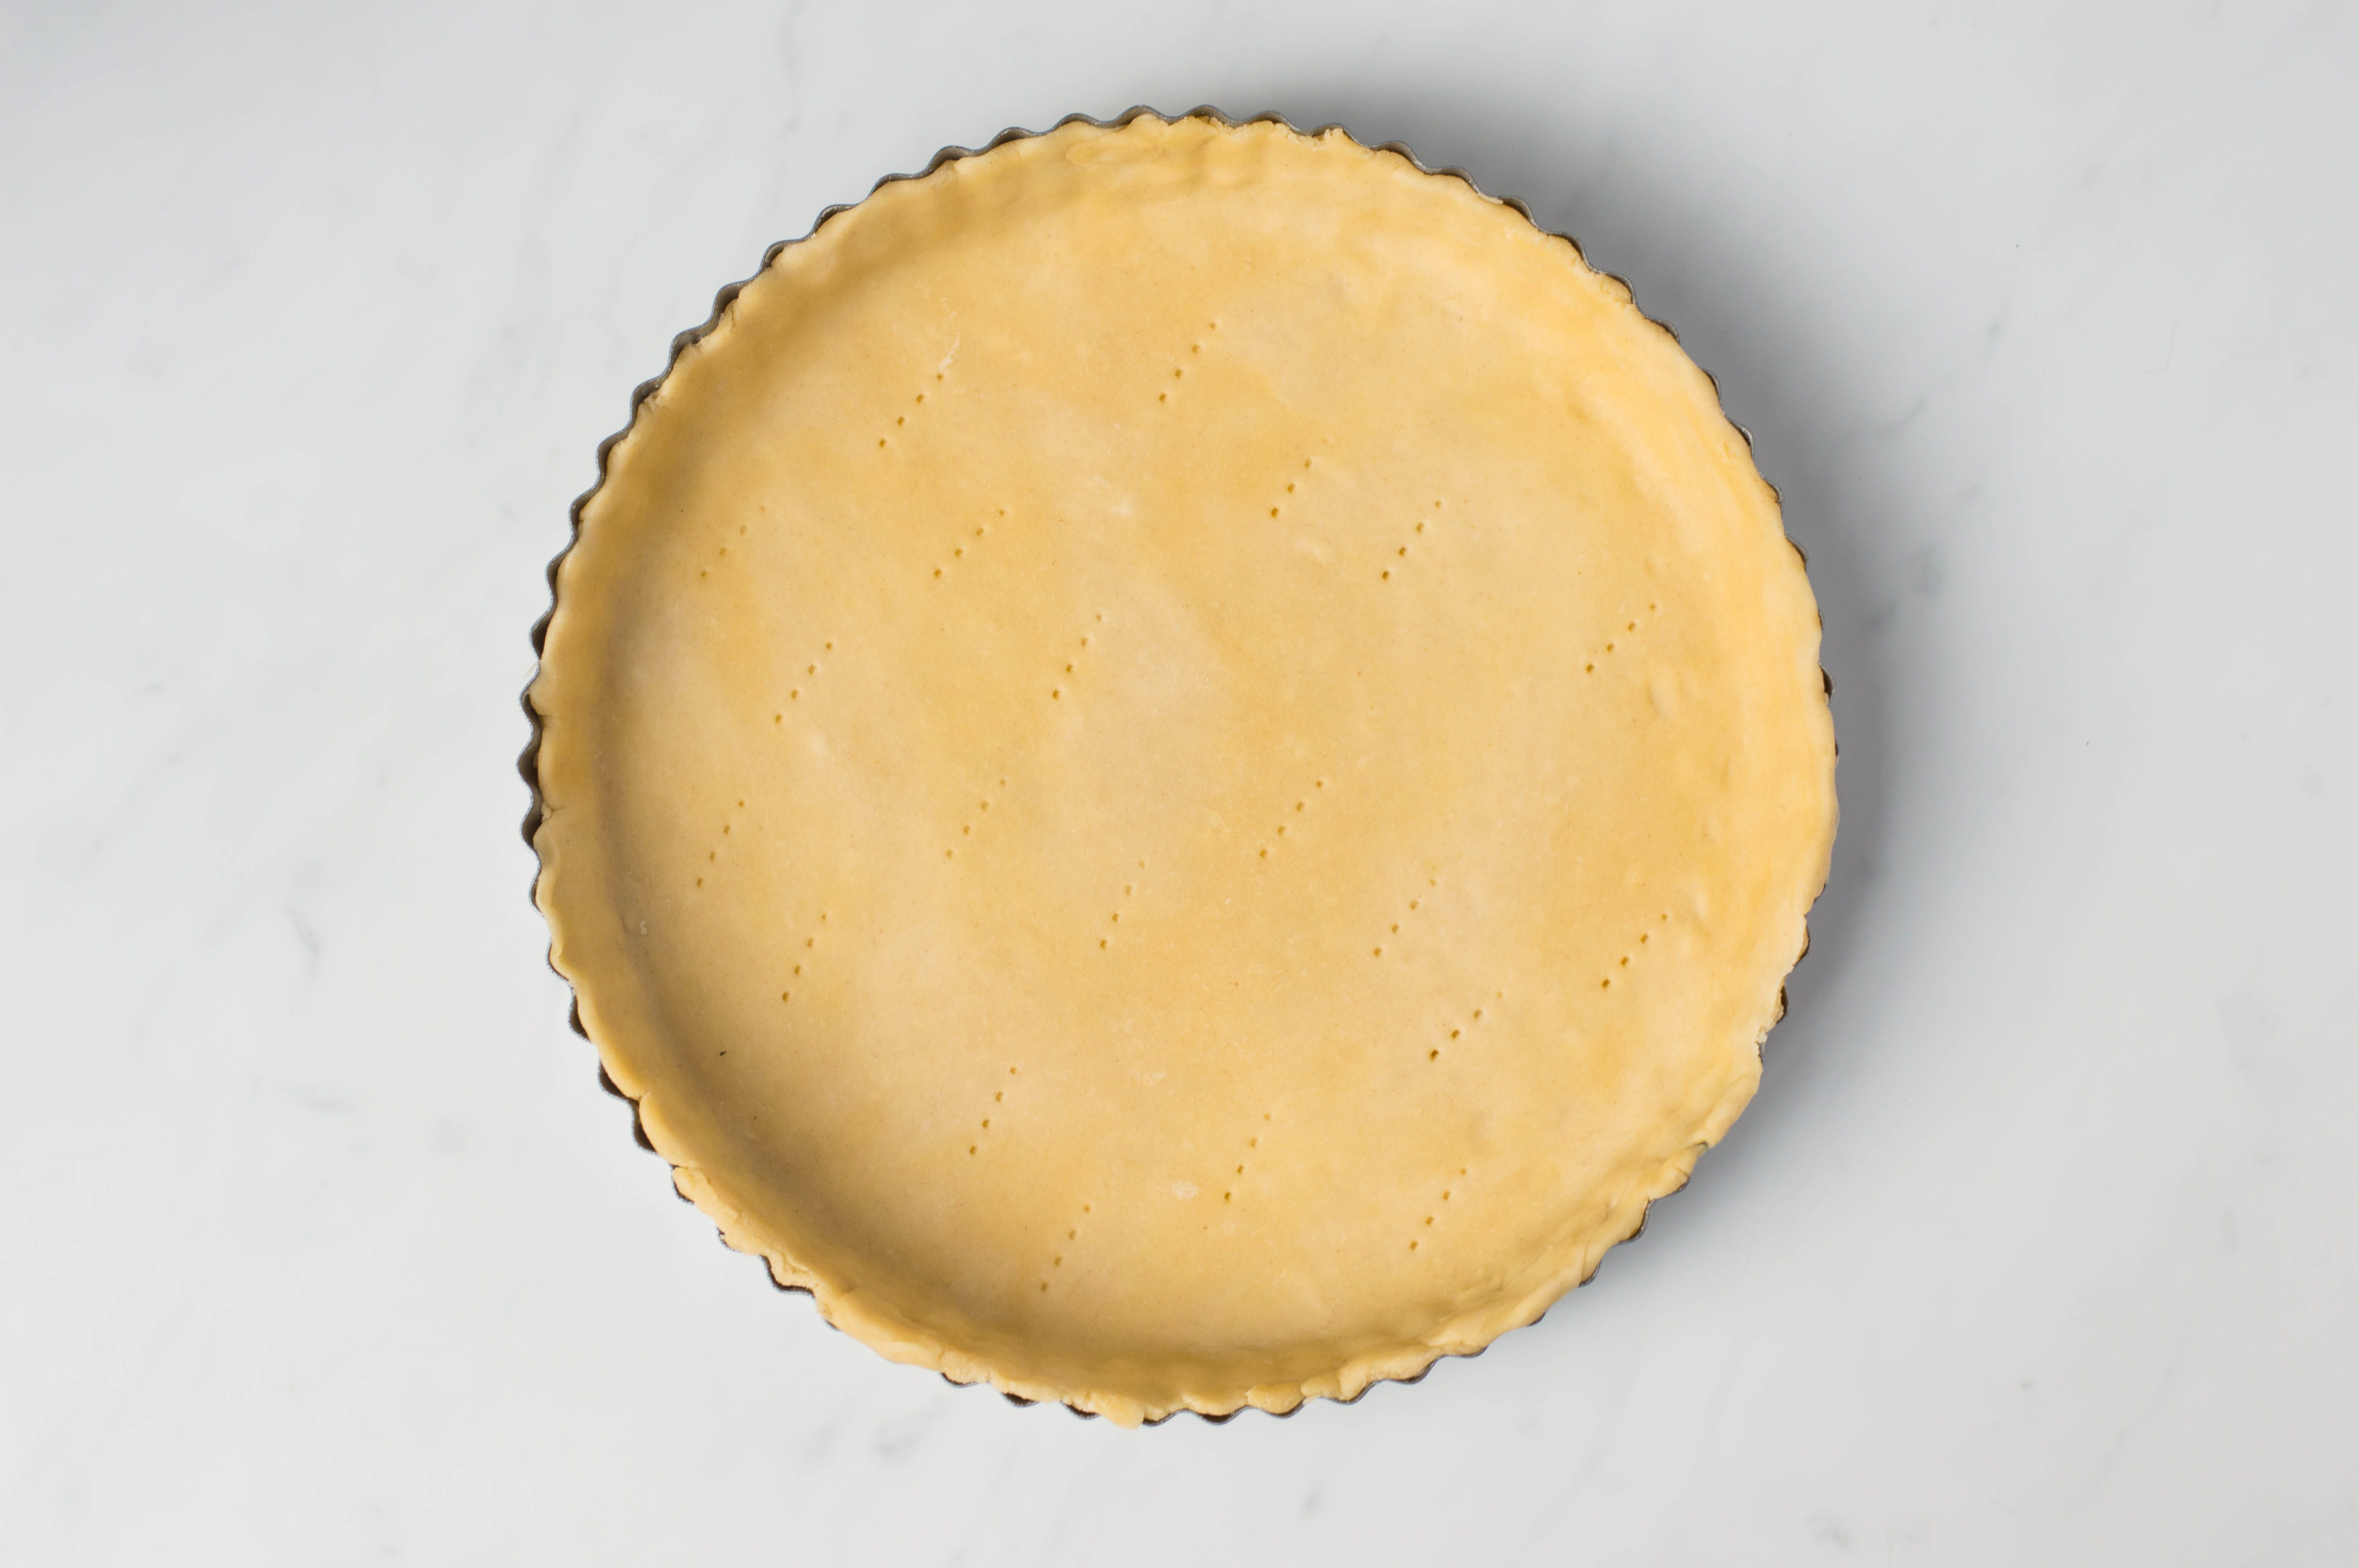 Dough in tart pan with holes pricked in base